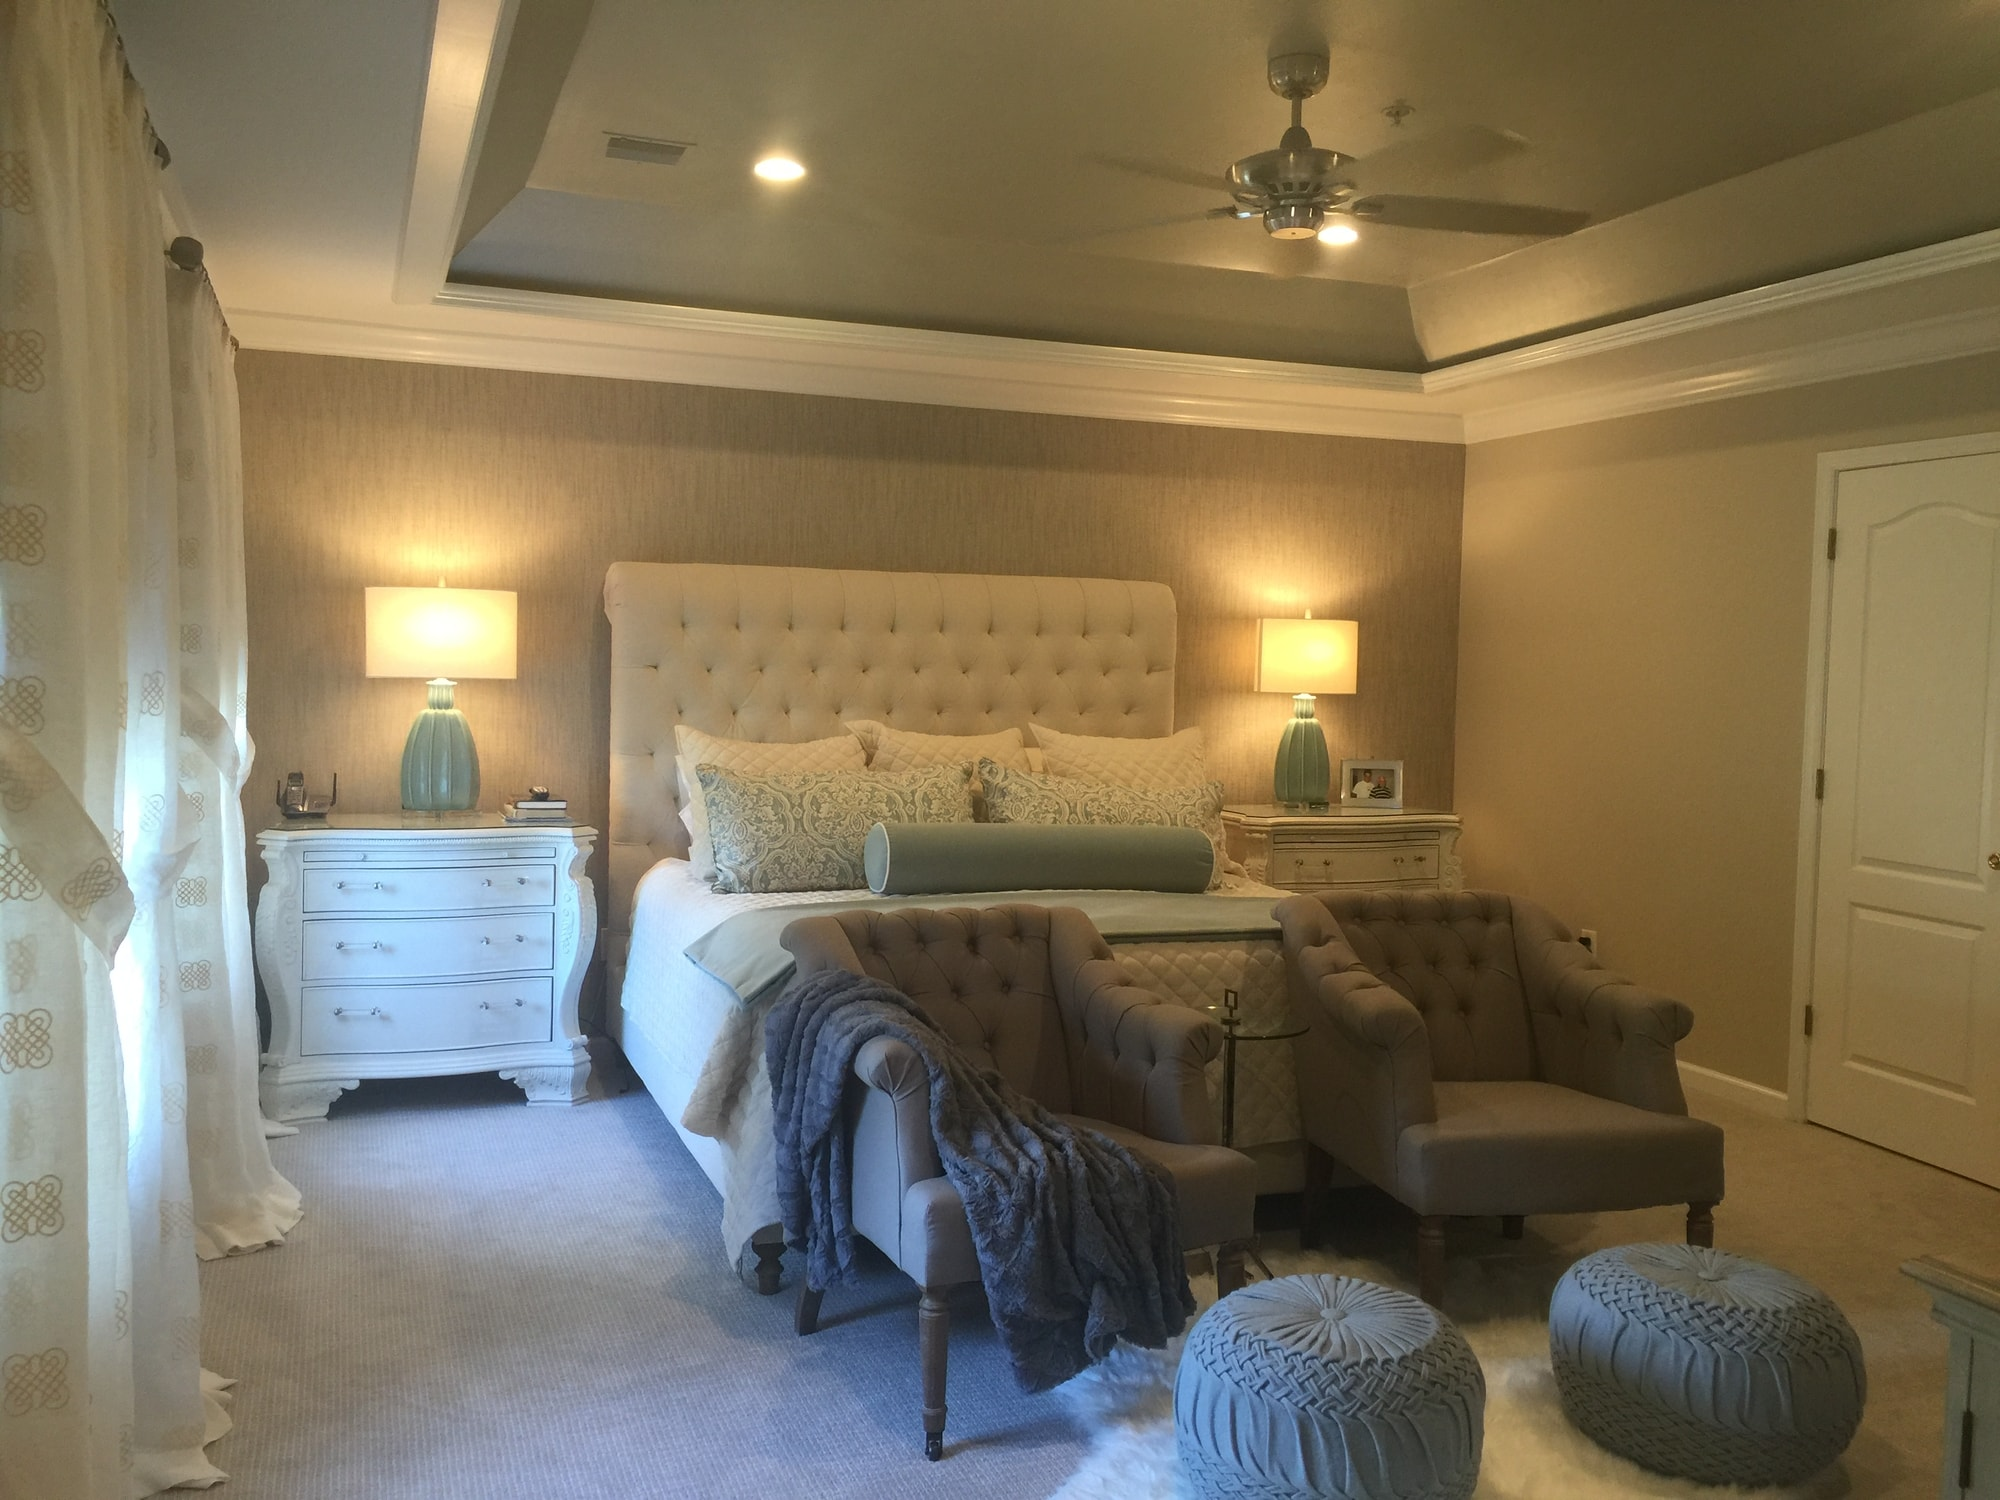 Classic style bedroom with luxury white bed and soft seating chairs